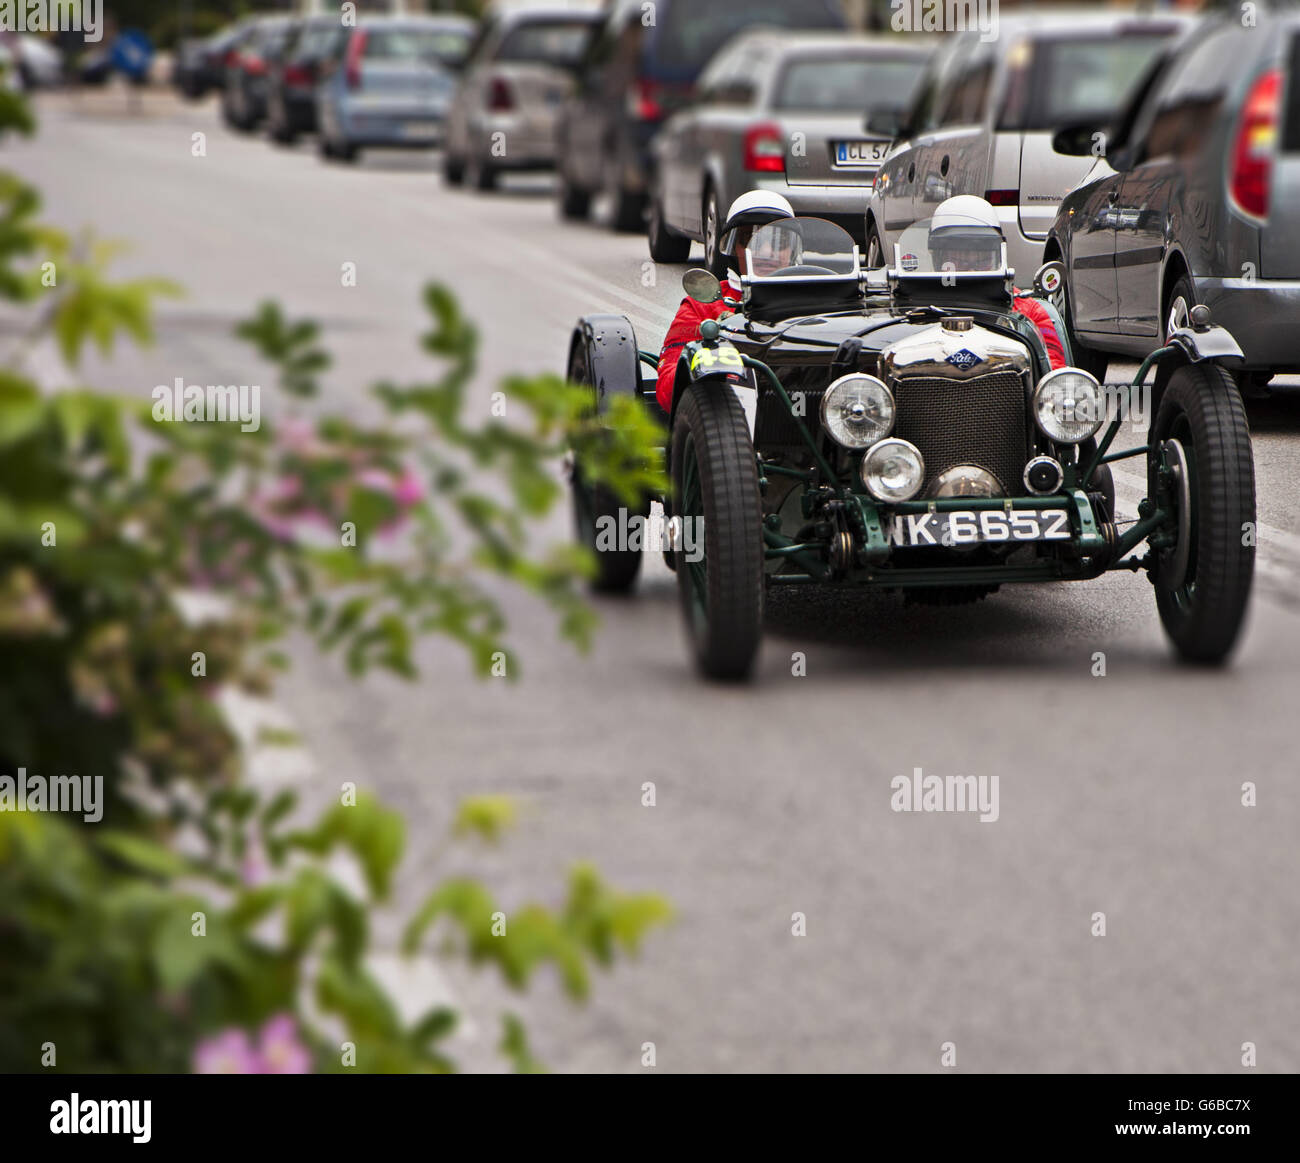 FANO, ITALY - MAY 16: unidentified crew on an old racing car in ...